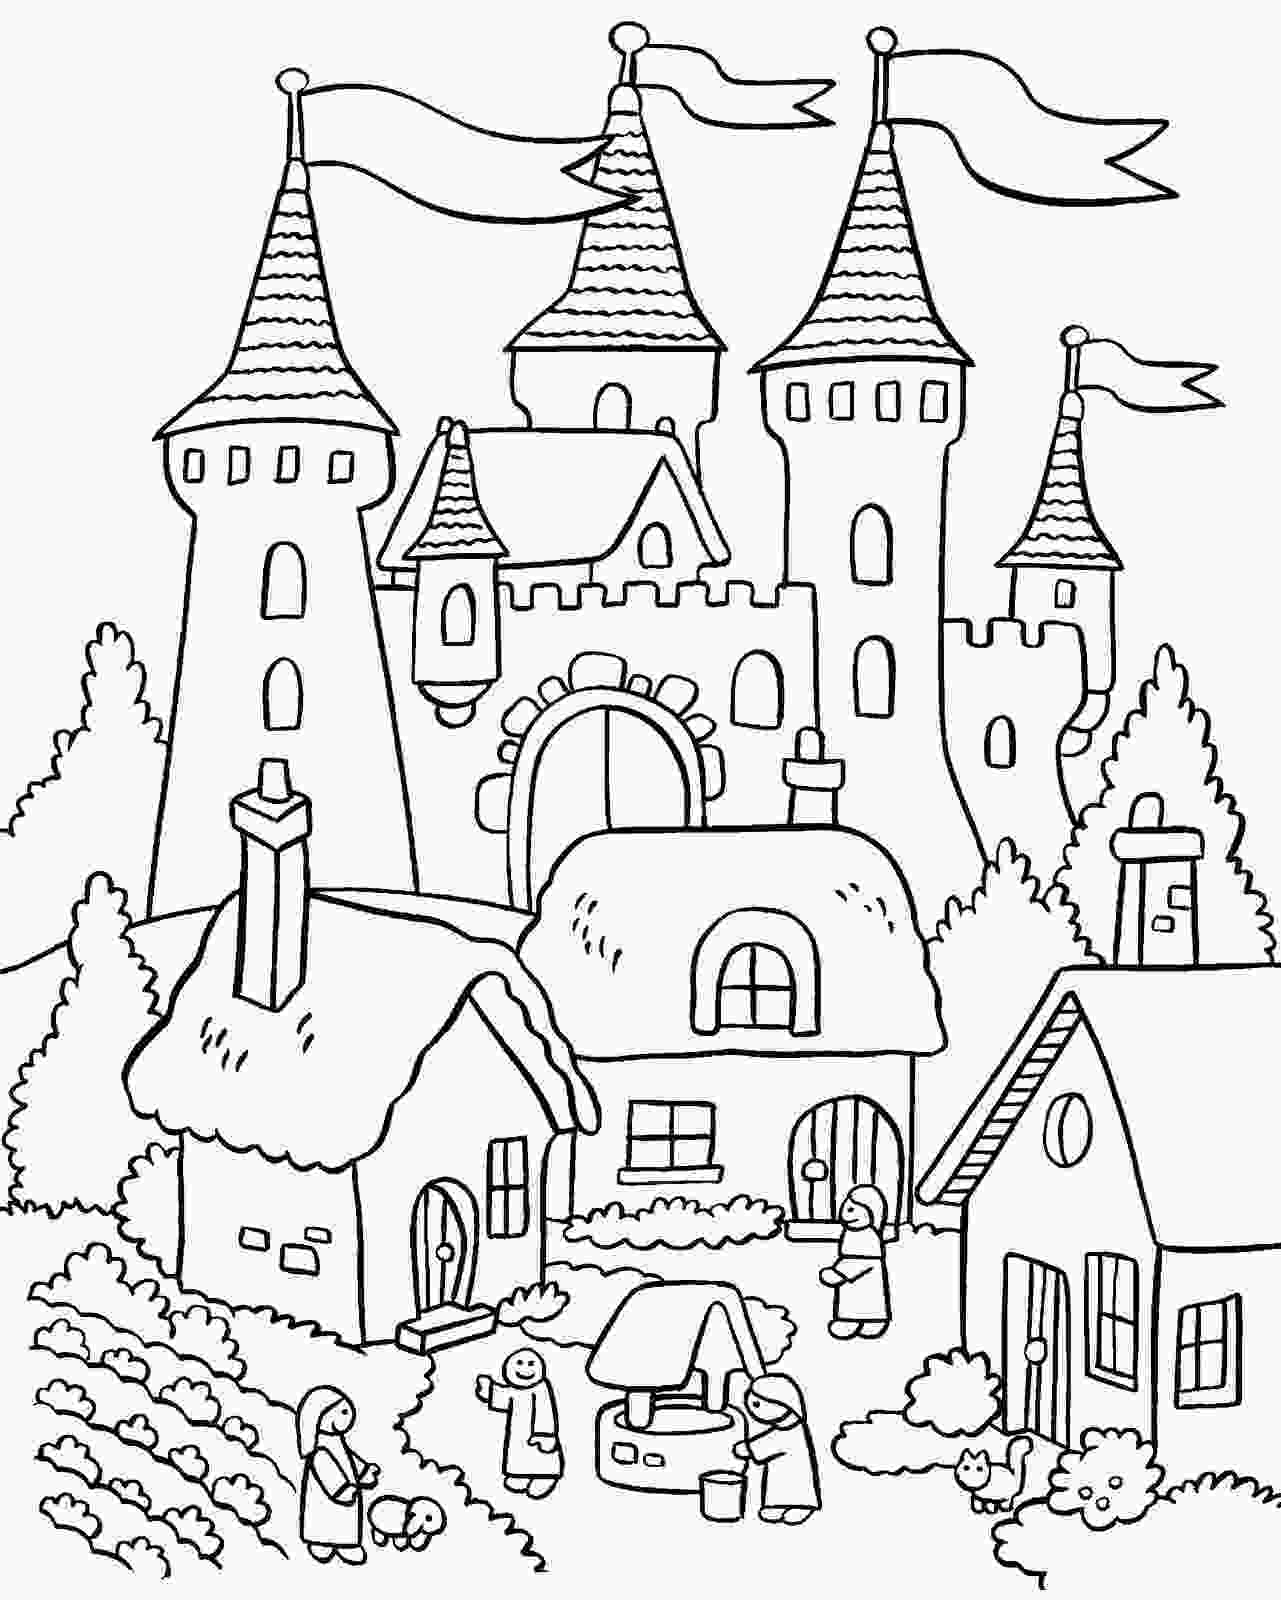 coloring page garden garden coloring pages to download and print for free